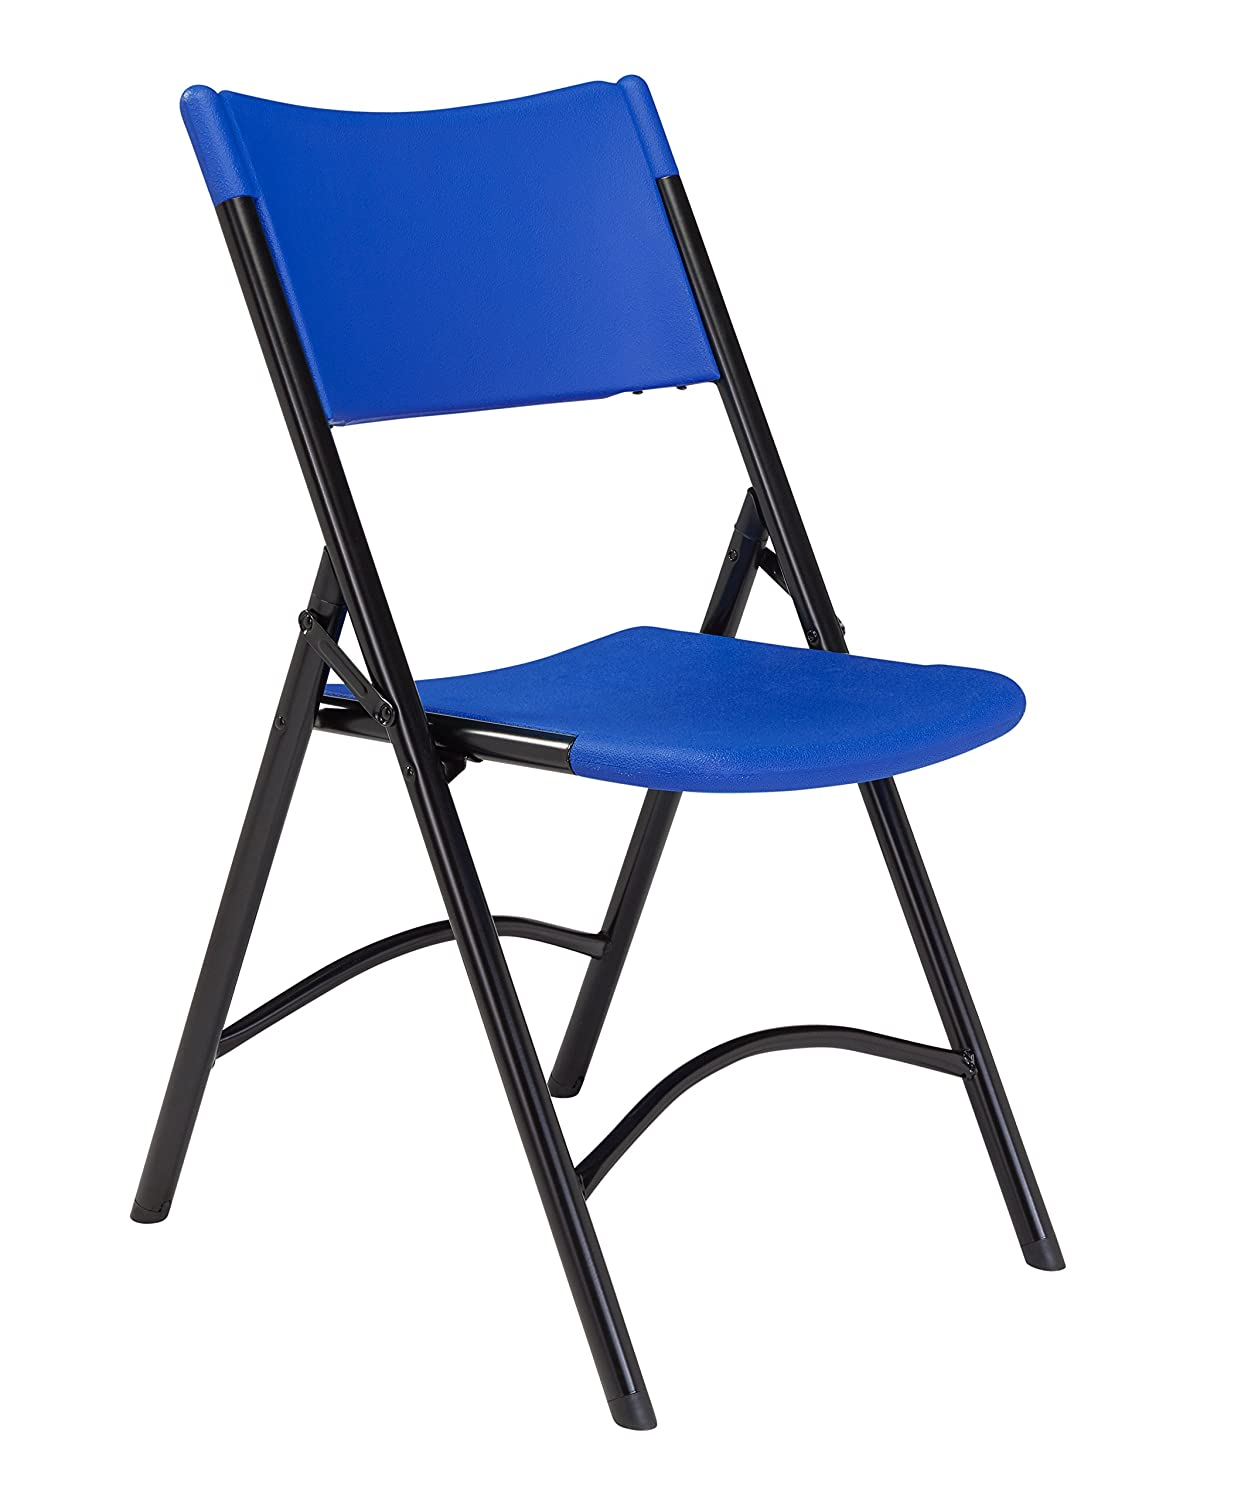 National Public Seating 600 Series Steel Frame Blow Molded Resin Plastic Seat and Back Folding Chair with Double Brace, 300 lbs Capacity, Red/Black (Carton of 4) 640